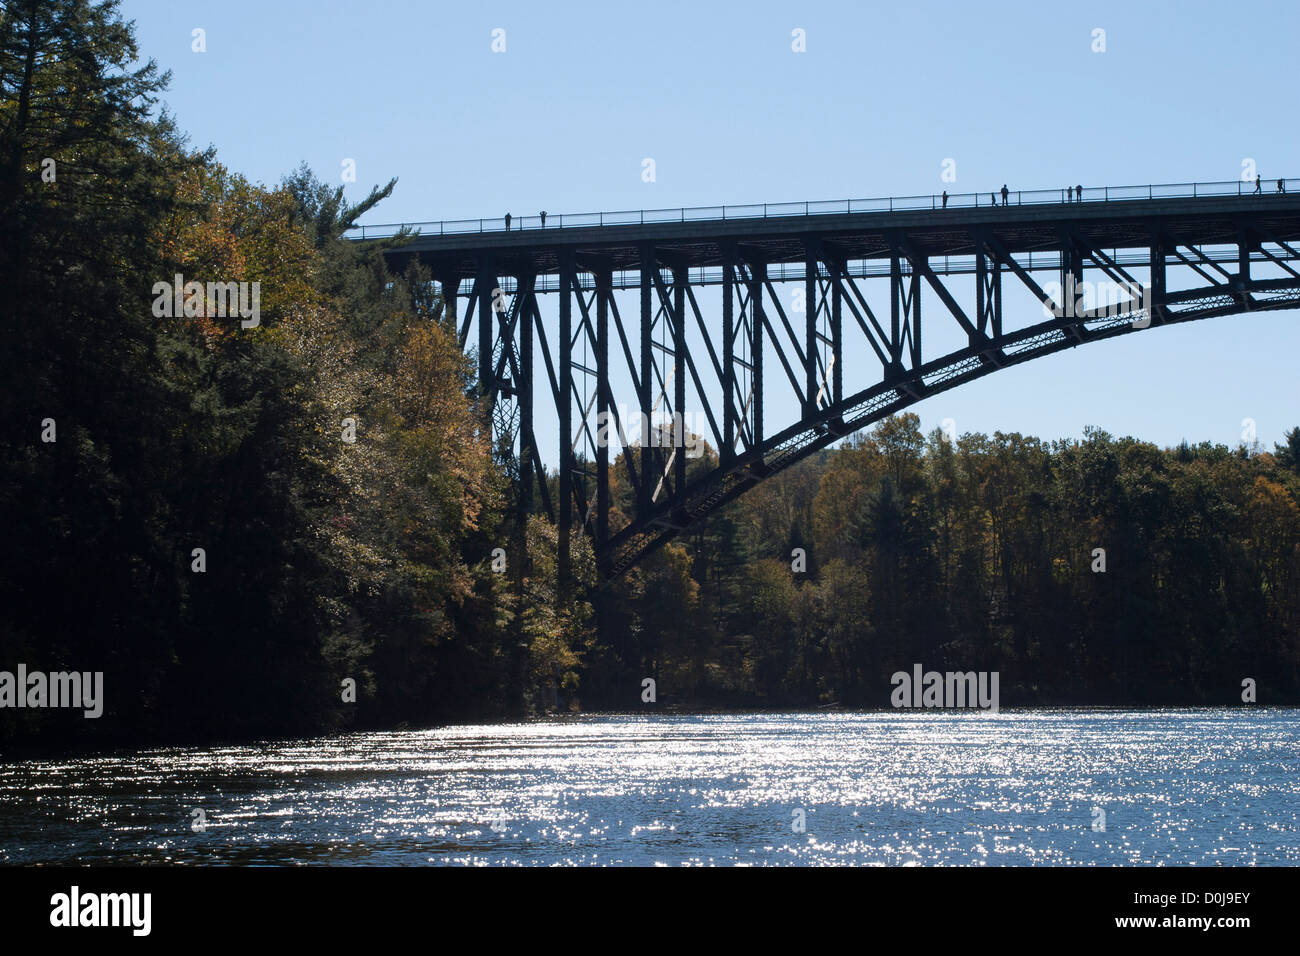 French King Bridge, a large steel-frame arch bridge built in 1931/32,  spans the Connecticut River in Northfield - Stock Image